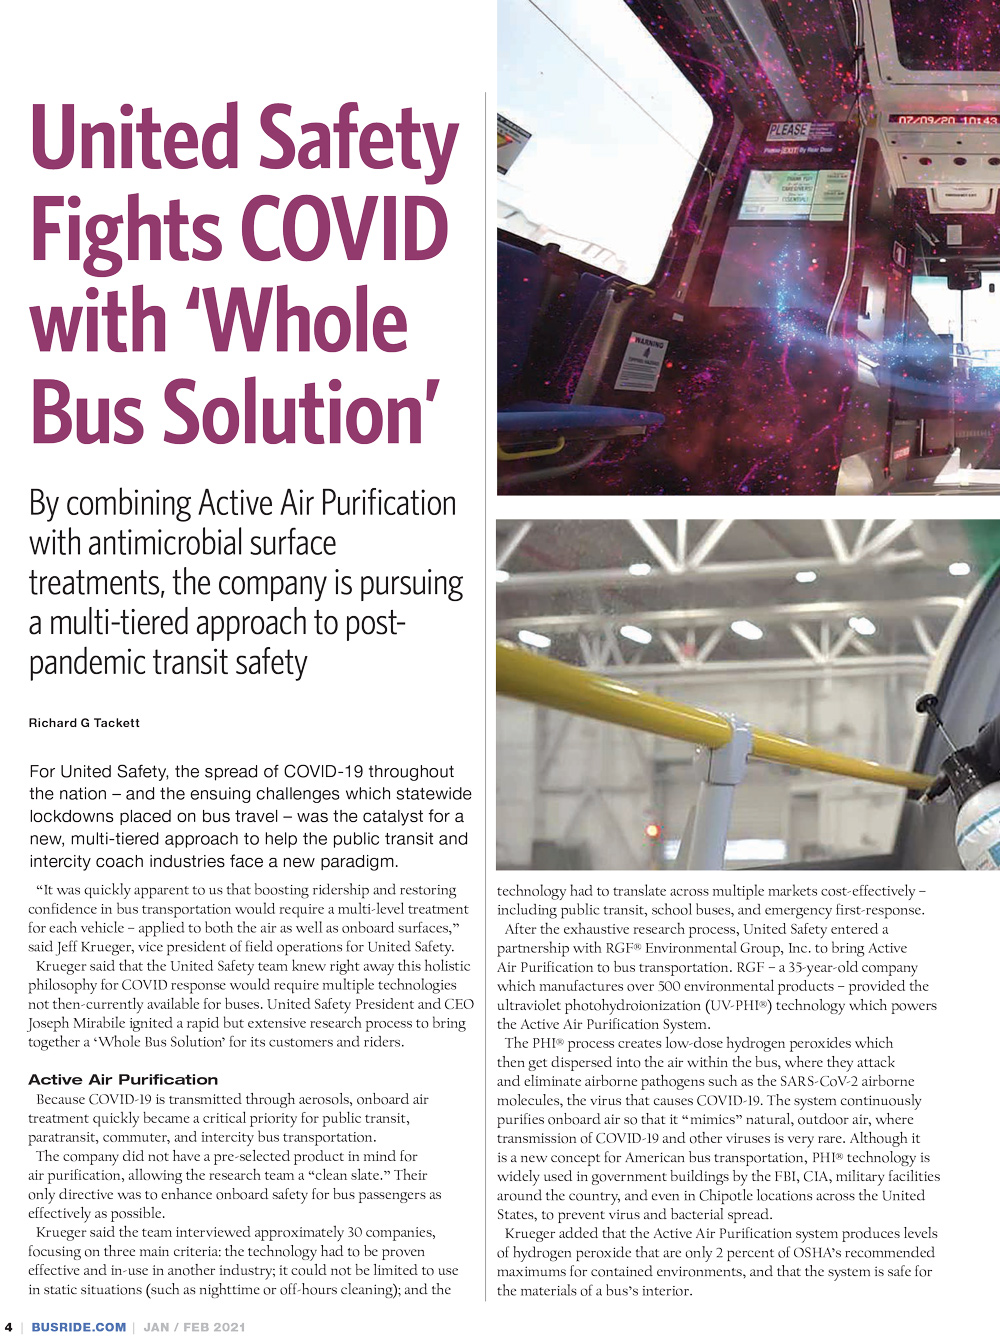 Bus Ride, February 2021 - 'WHOLE BUS SOLUTION'